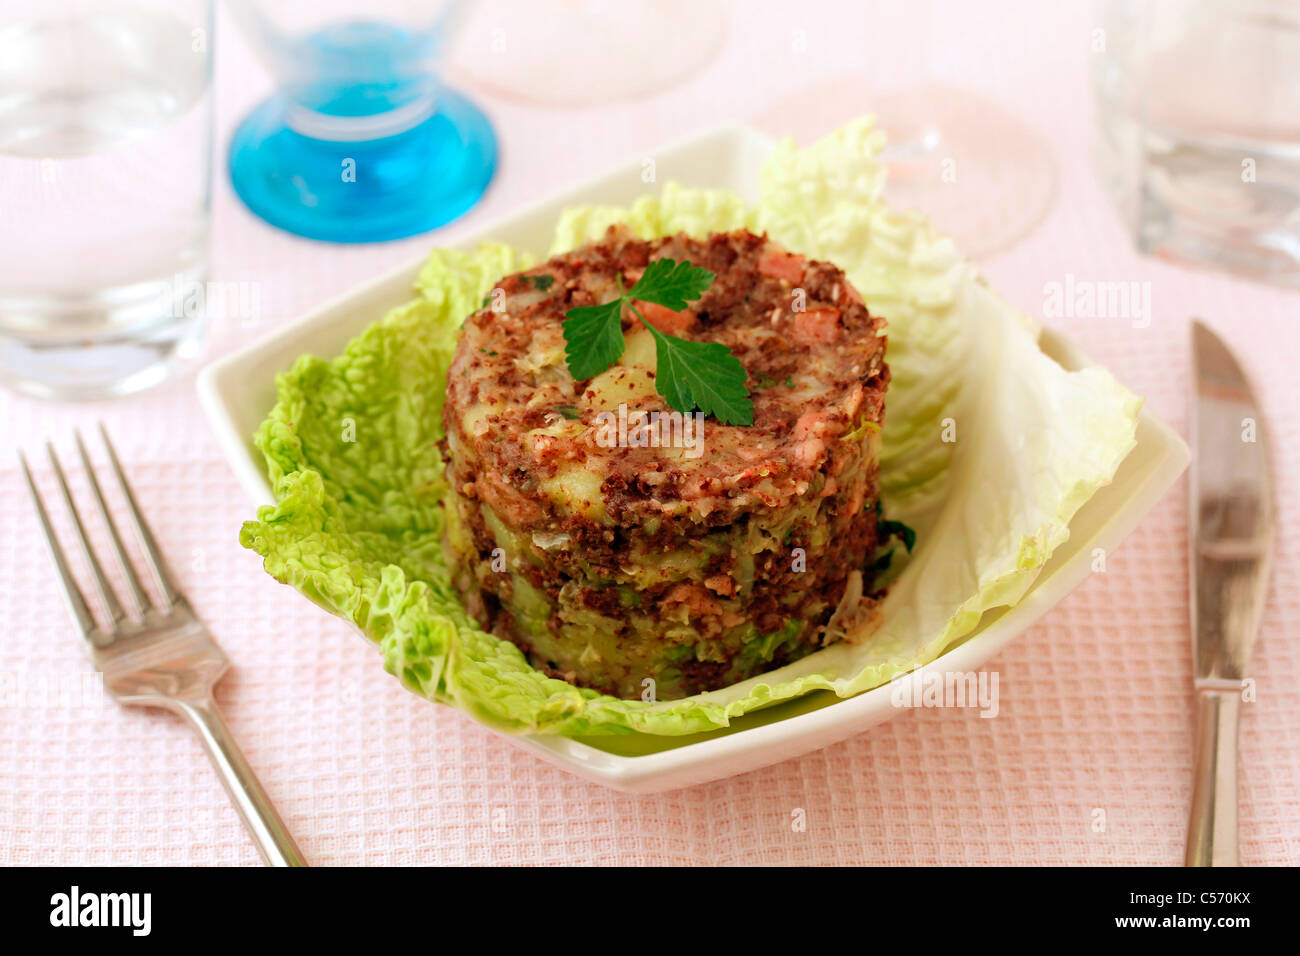 Mashed cabbage and potatoes fried with black sausage. Recipe available. Stock Photo